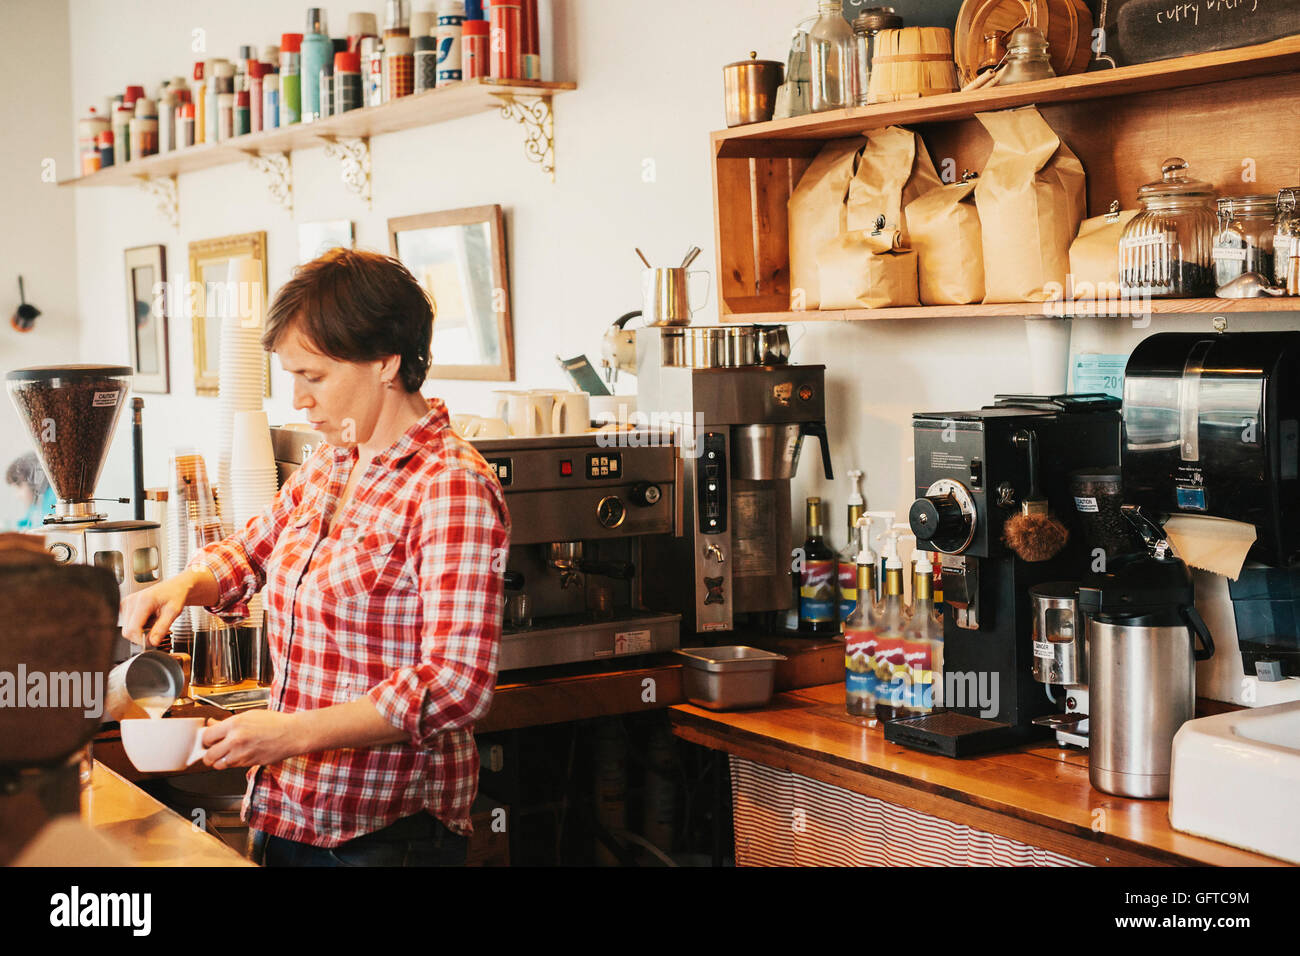 A woman in a plaid shirt working behind the counter in a coffee shop - Stock Image